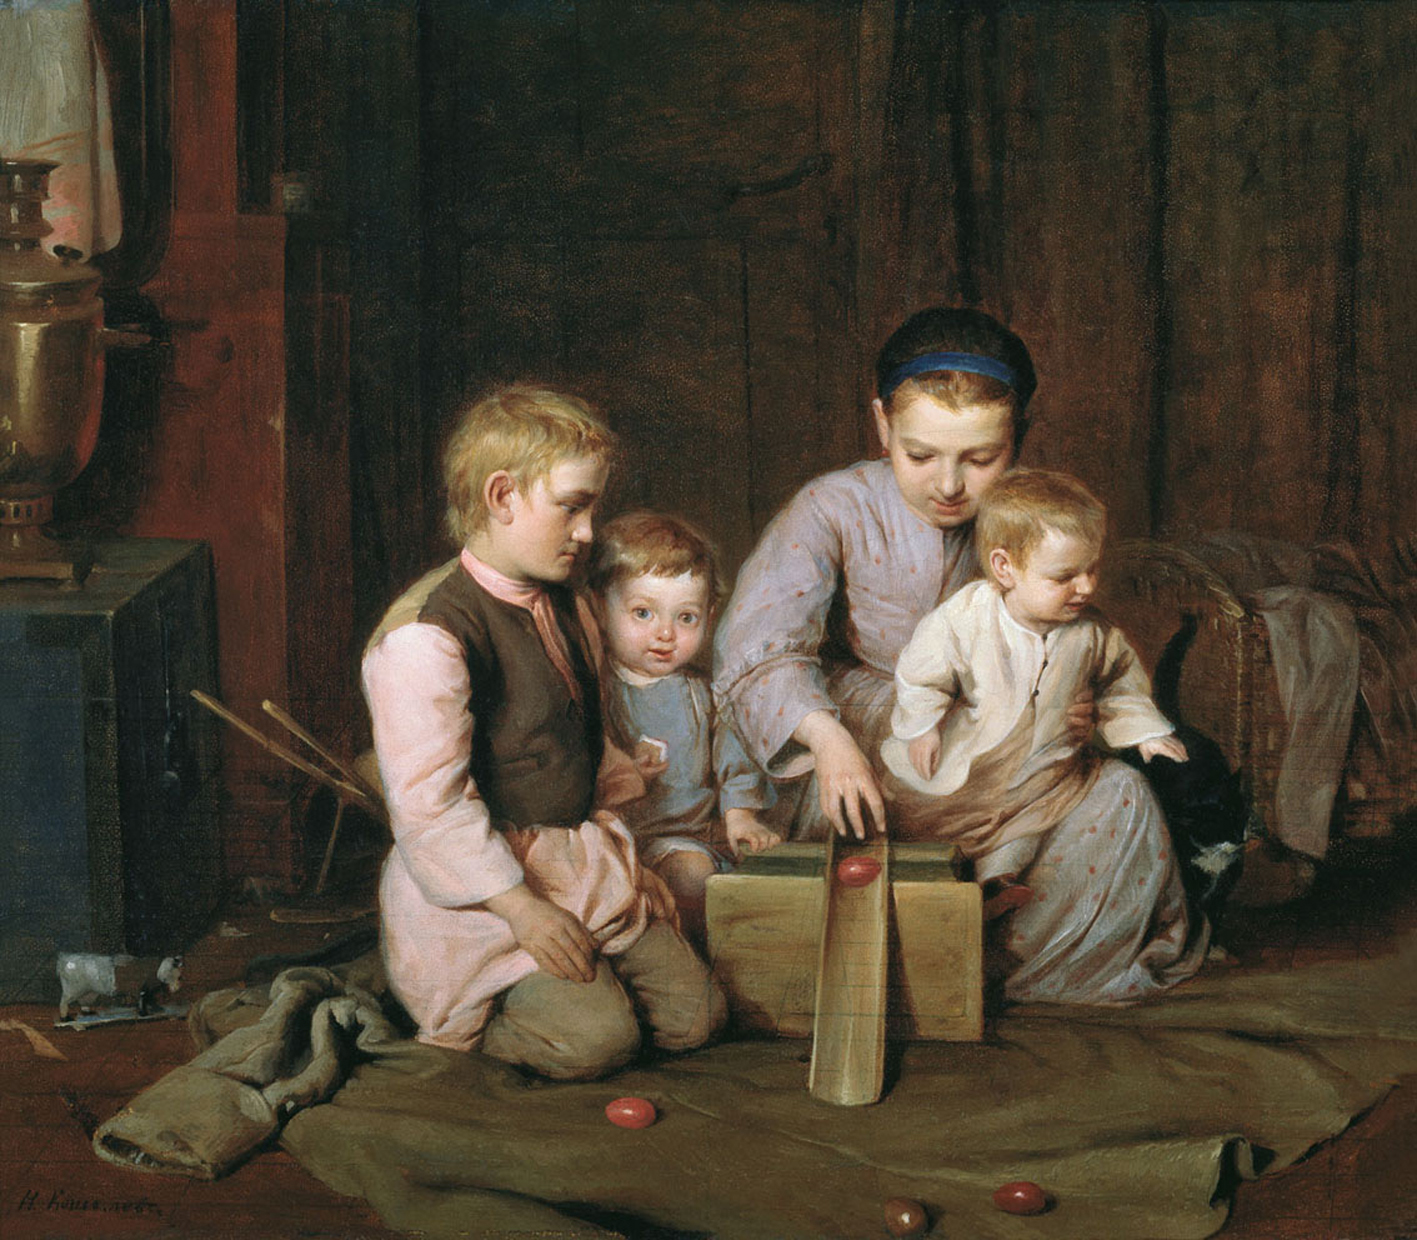 Nikolaj Andreevich  Koshelev (1840-1918)   Children ride Easter Eggs  Oil on canvas, 1855 (?)  The Russian Museum, St. Petersburg, Russia